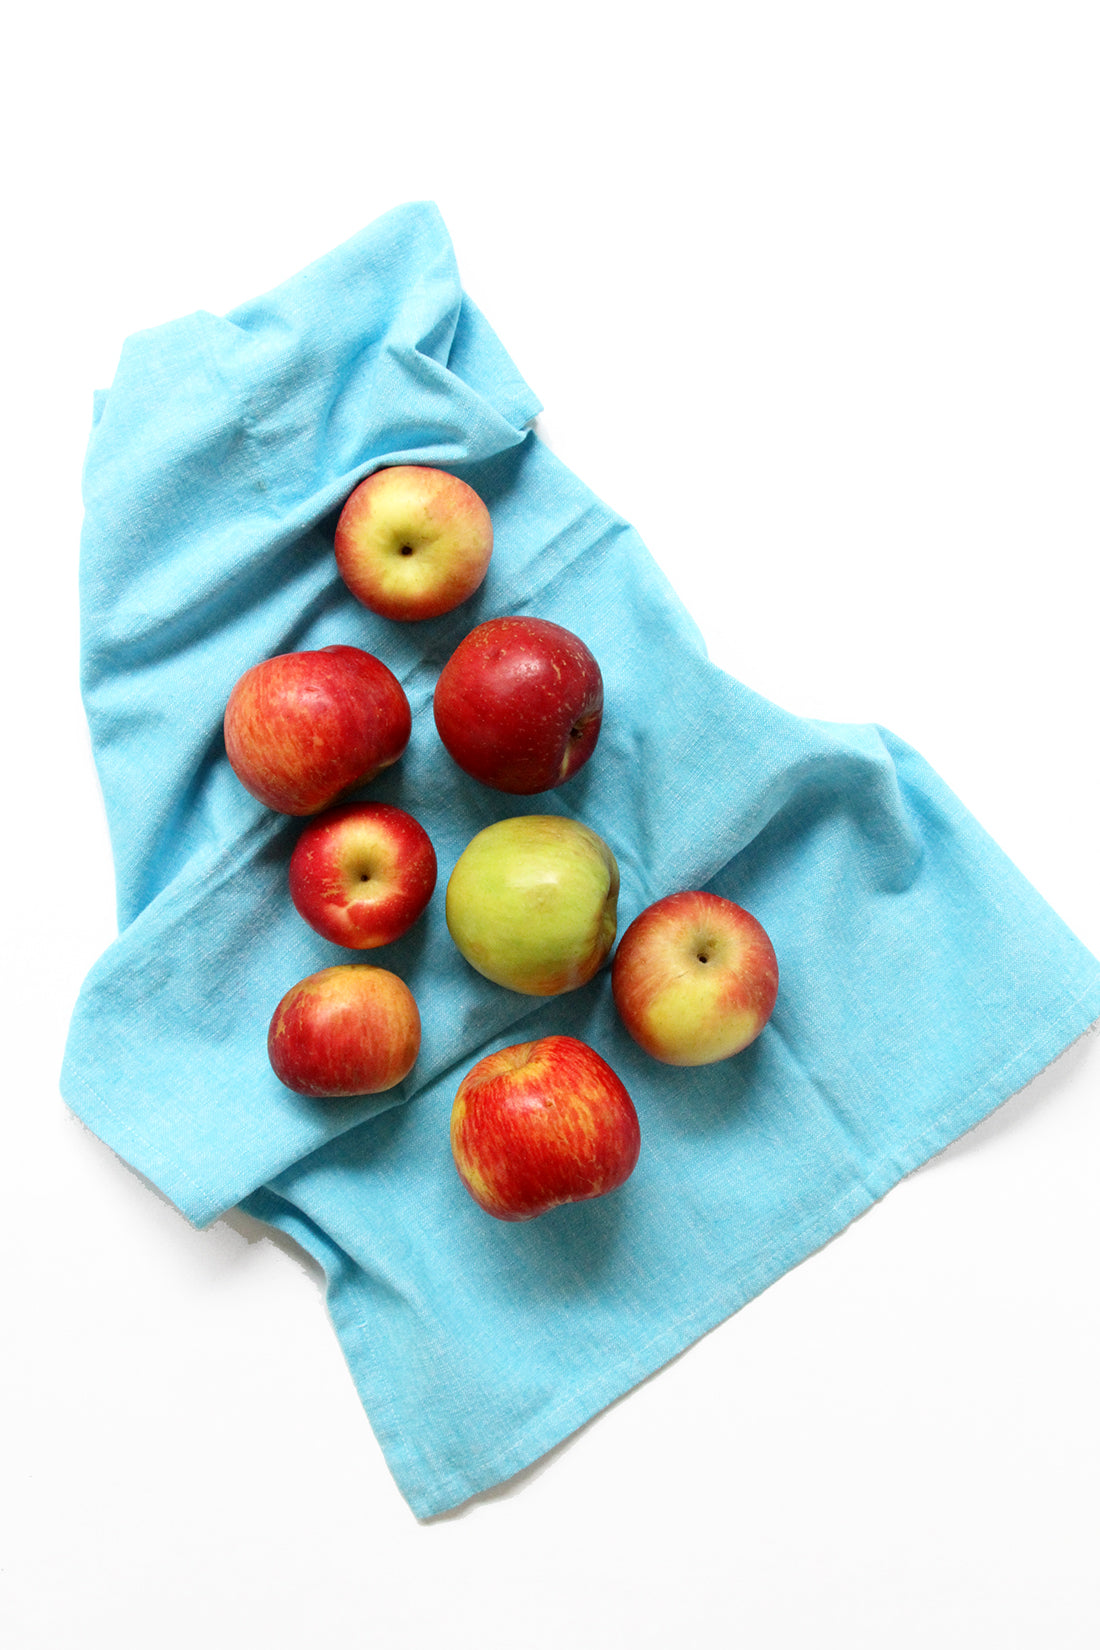 Image of eight apples on top of a blue hand towel used for Miss Jones Baking Co Caramel Apple Bars